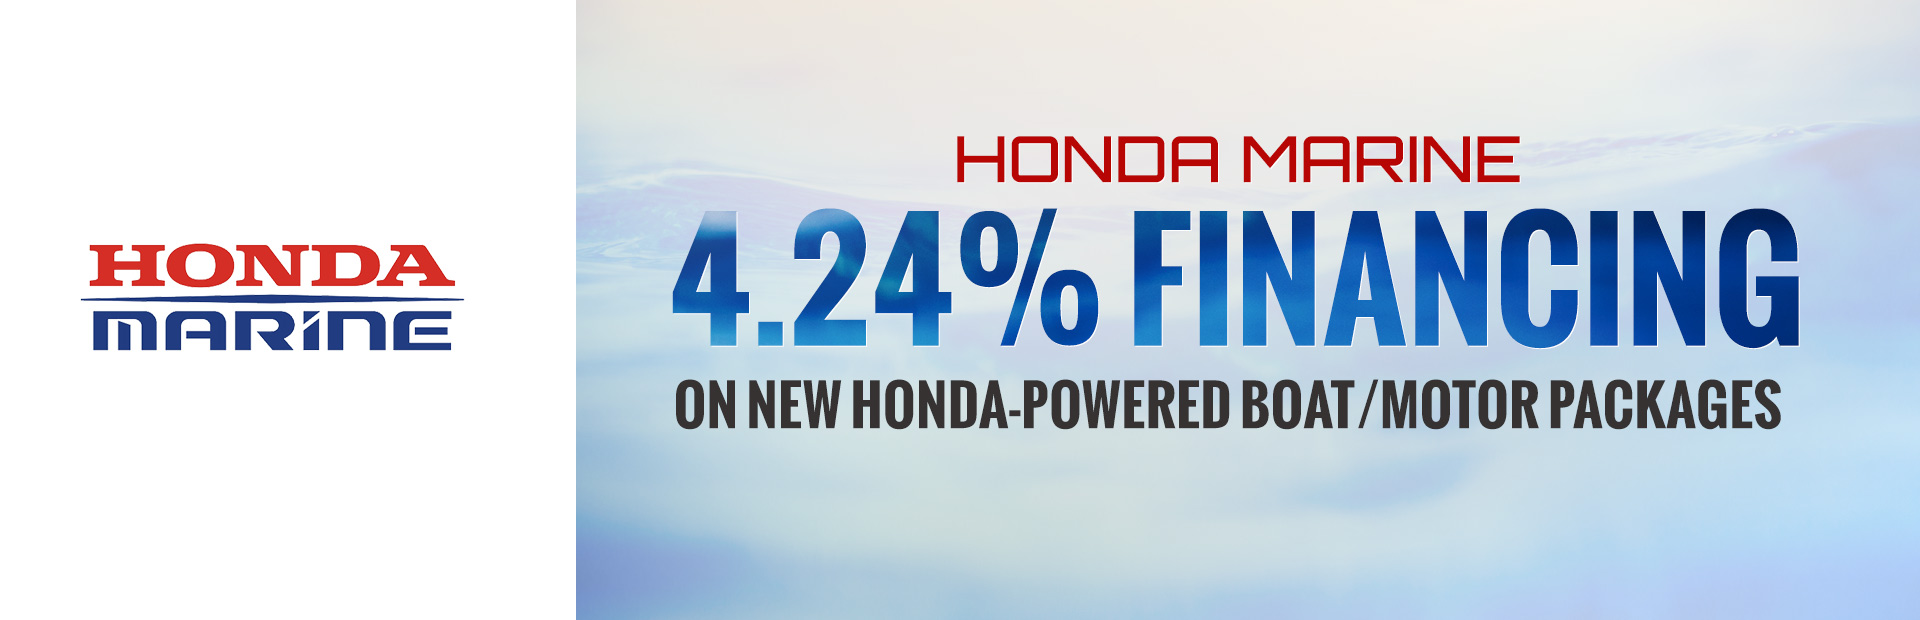 Honda Marine 424 Financing On New Powered